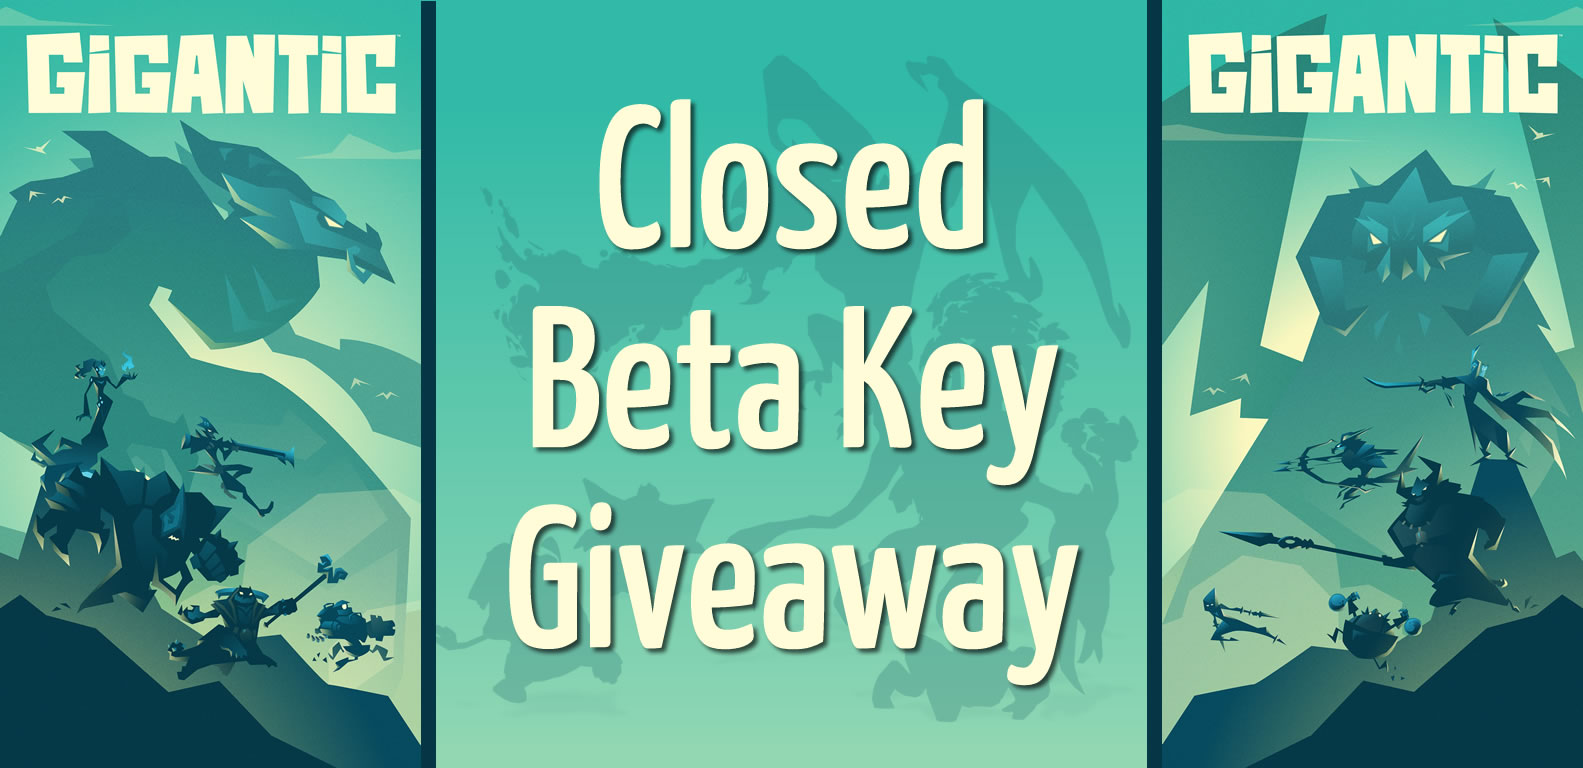 Gigantic Closed Beta Key Giveaway